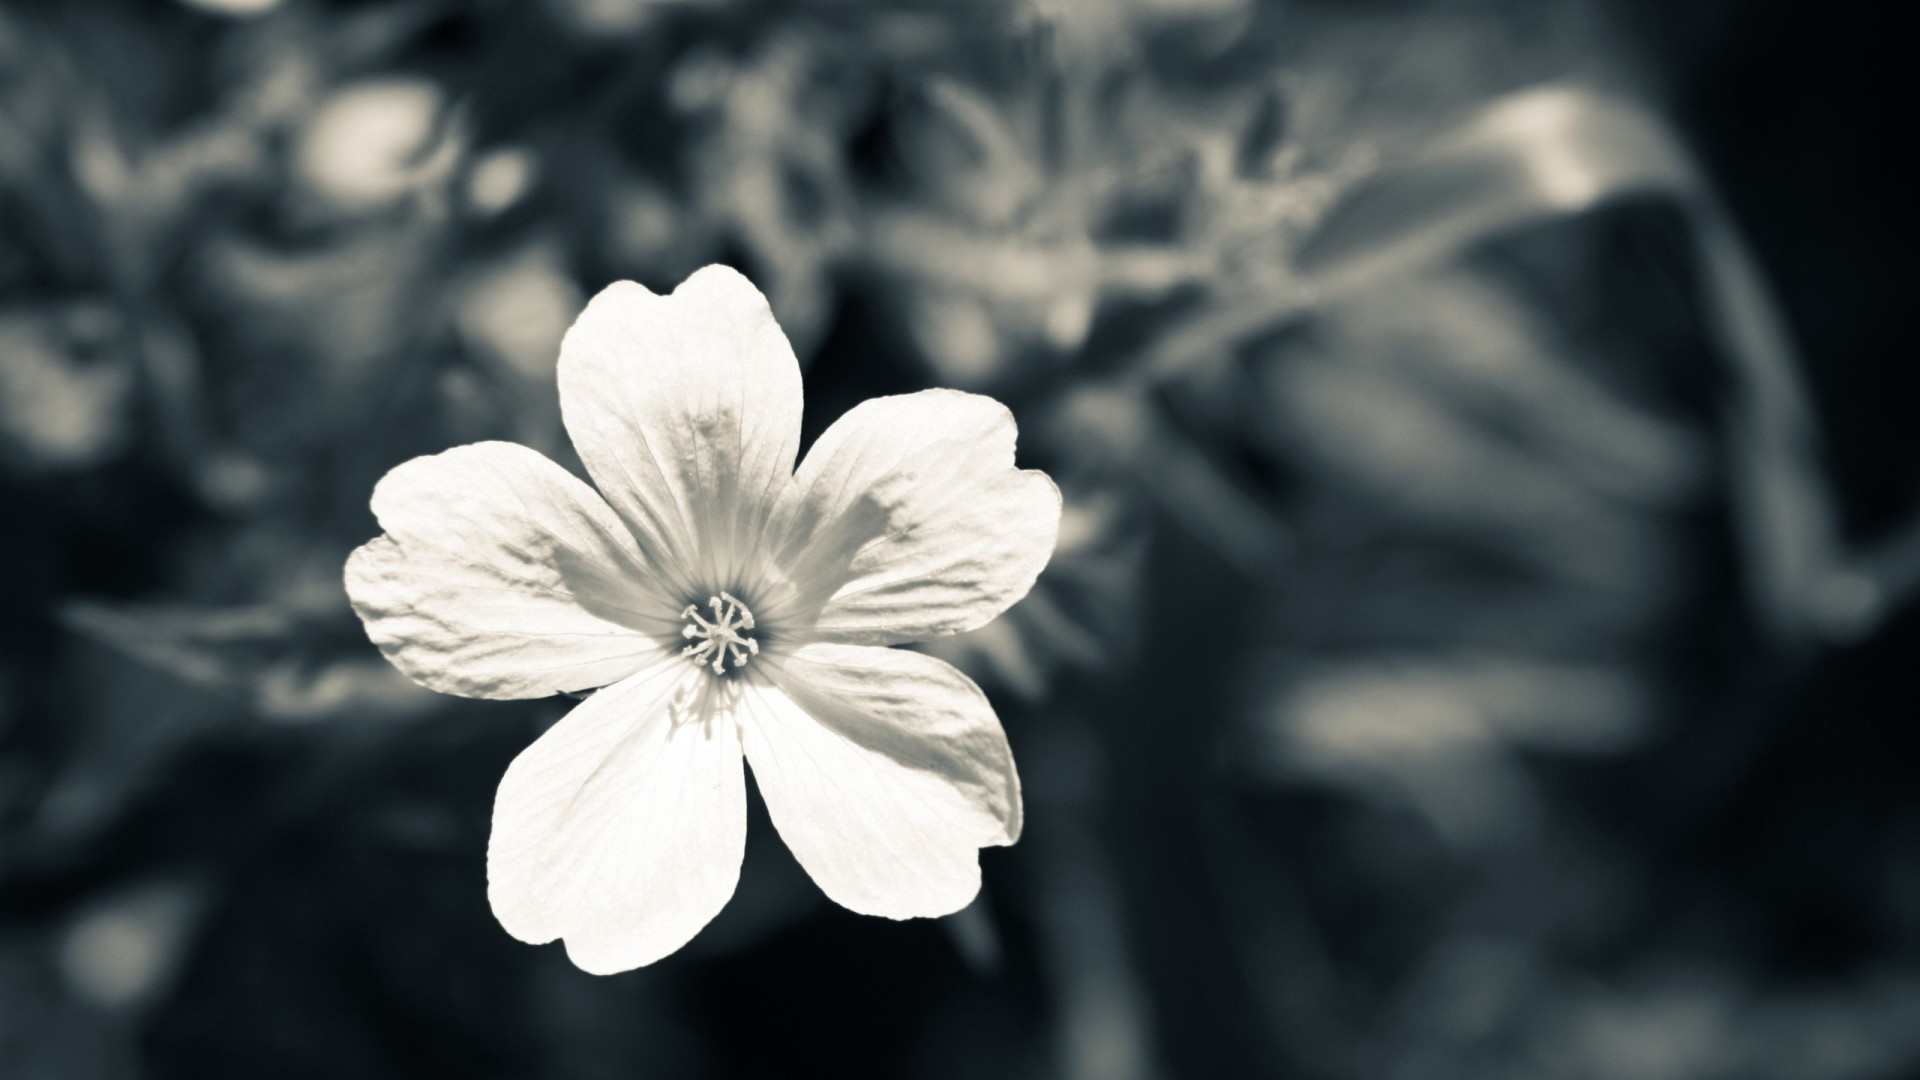 Black And White Flower Wallpaper 56 Images